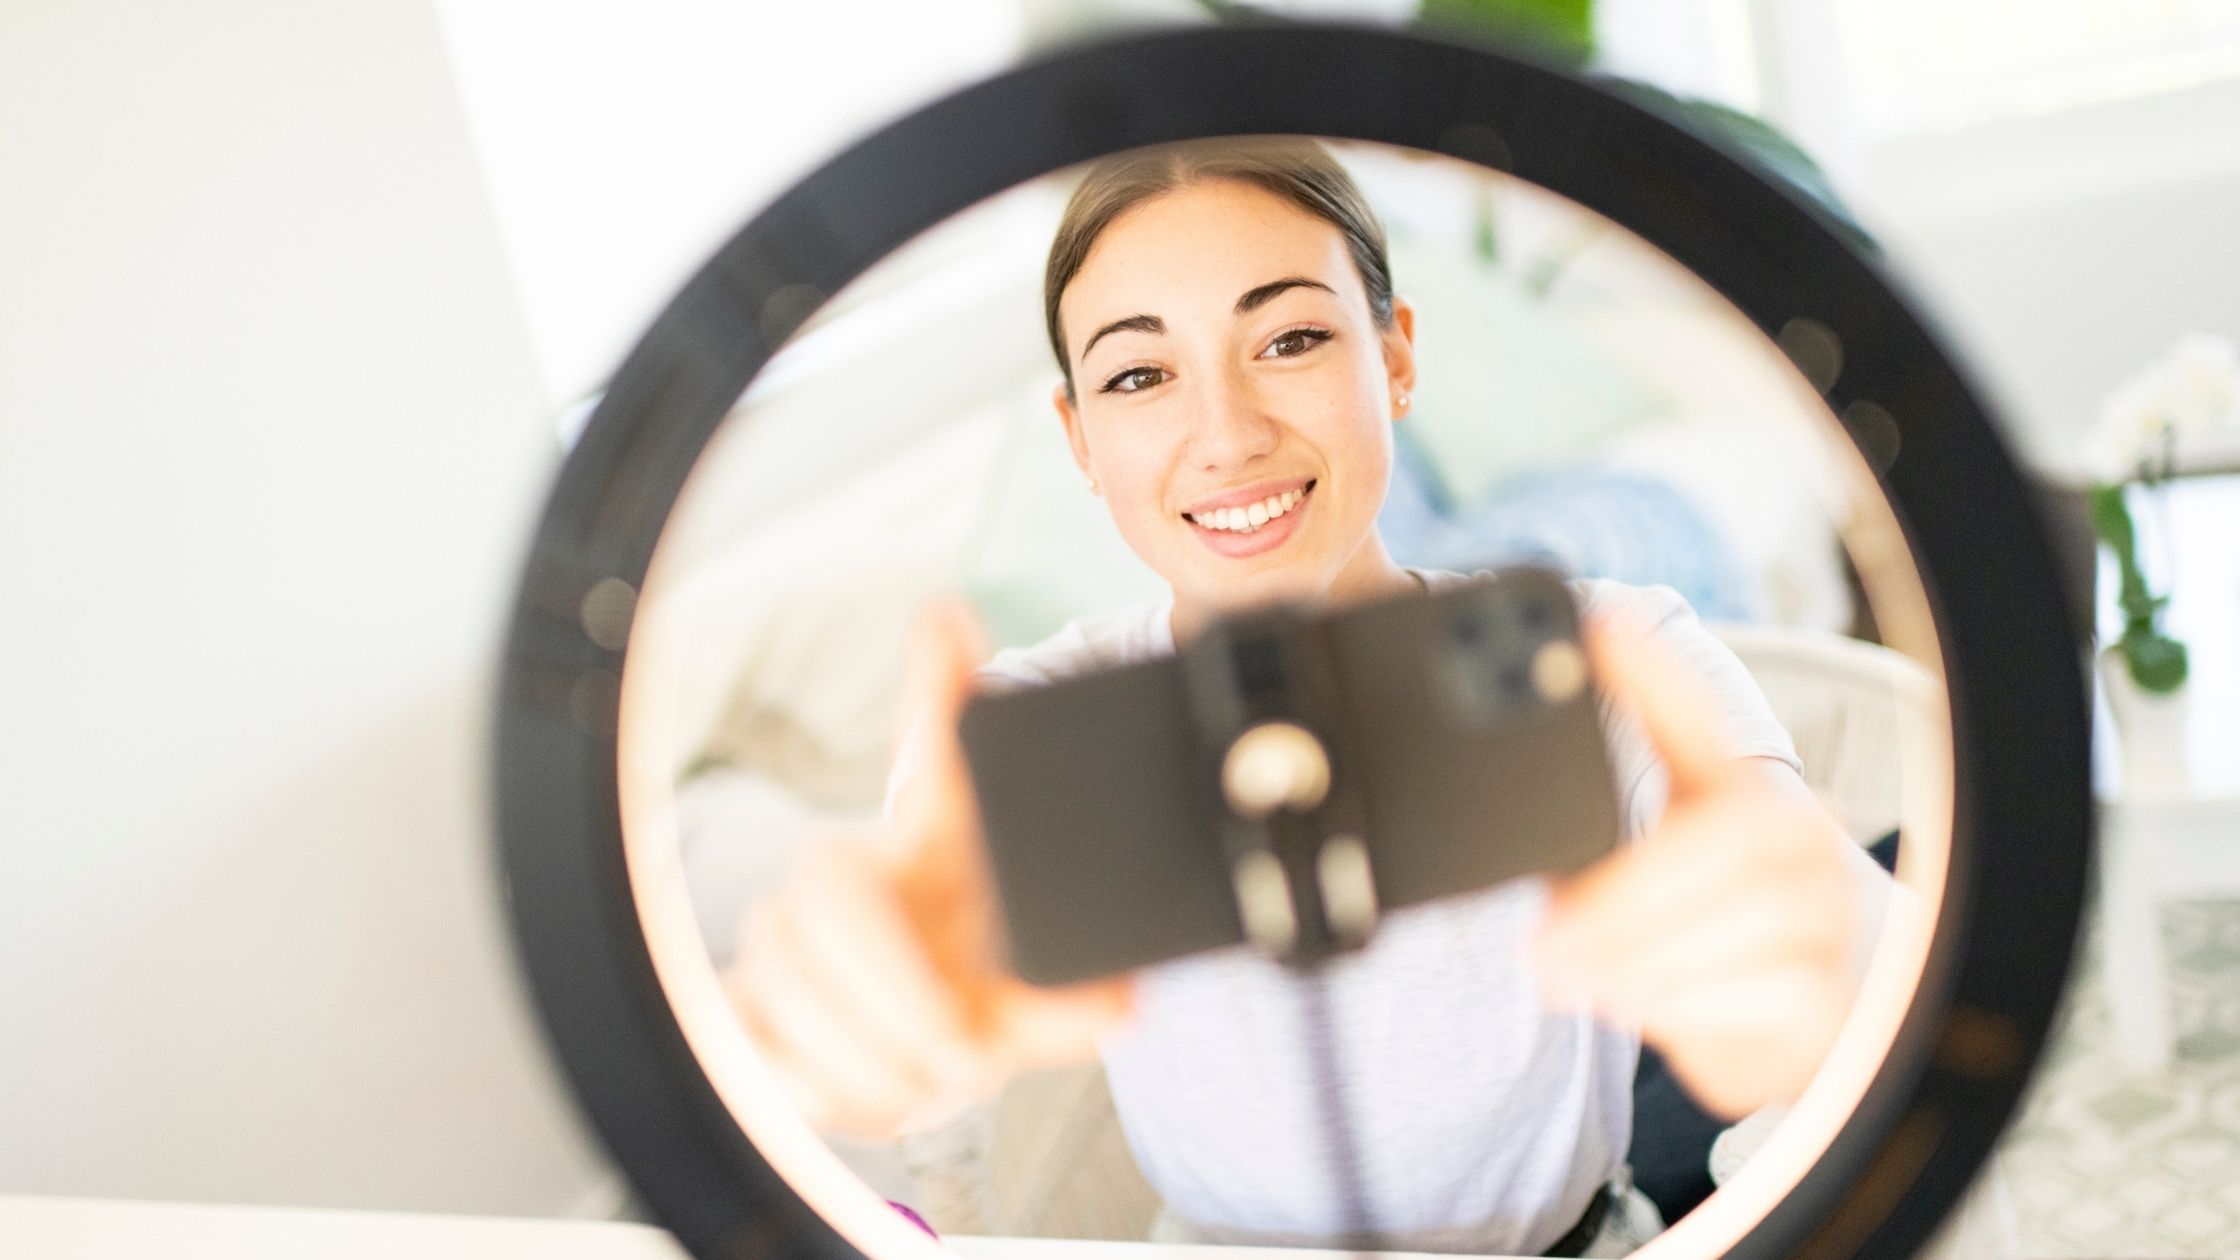 Woman with brown hair that is parted in the middle. She is on a zoom call on her phone, Her phone is on a holder in the center of a ring light.